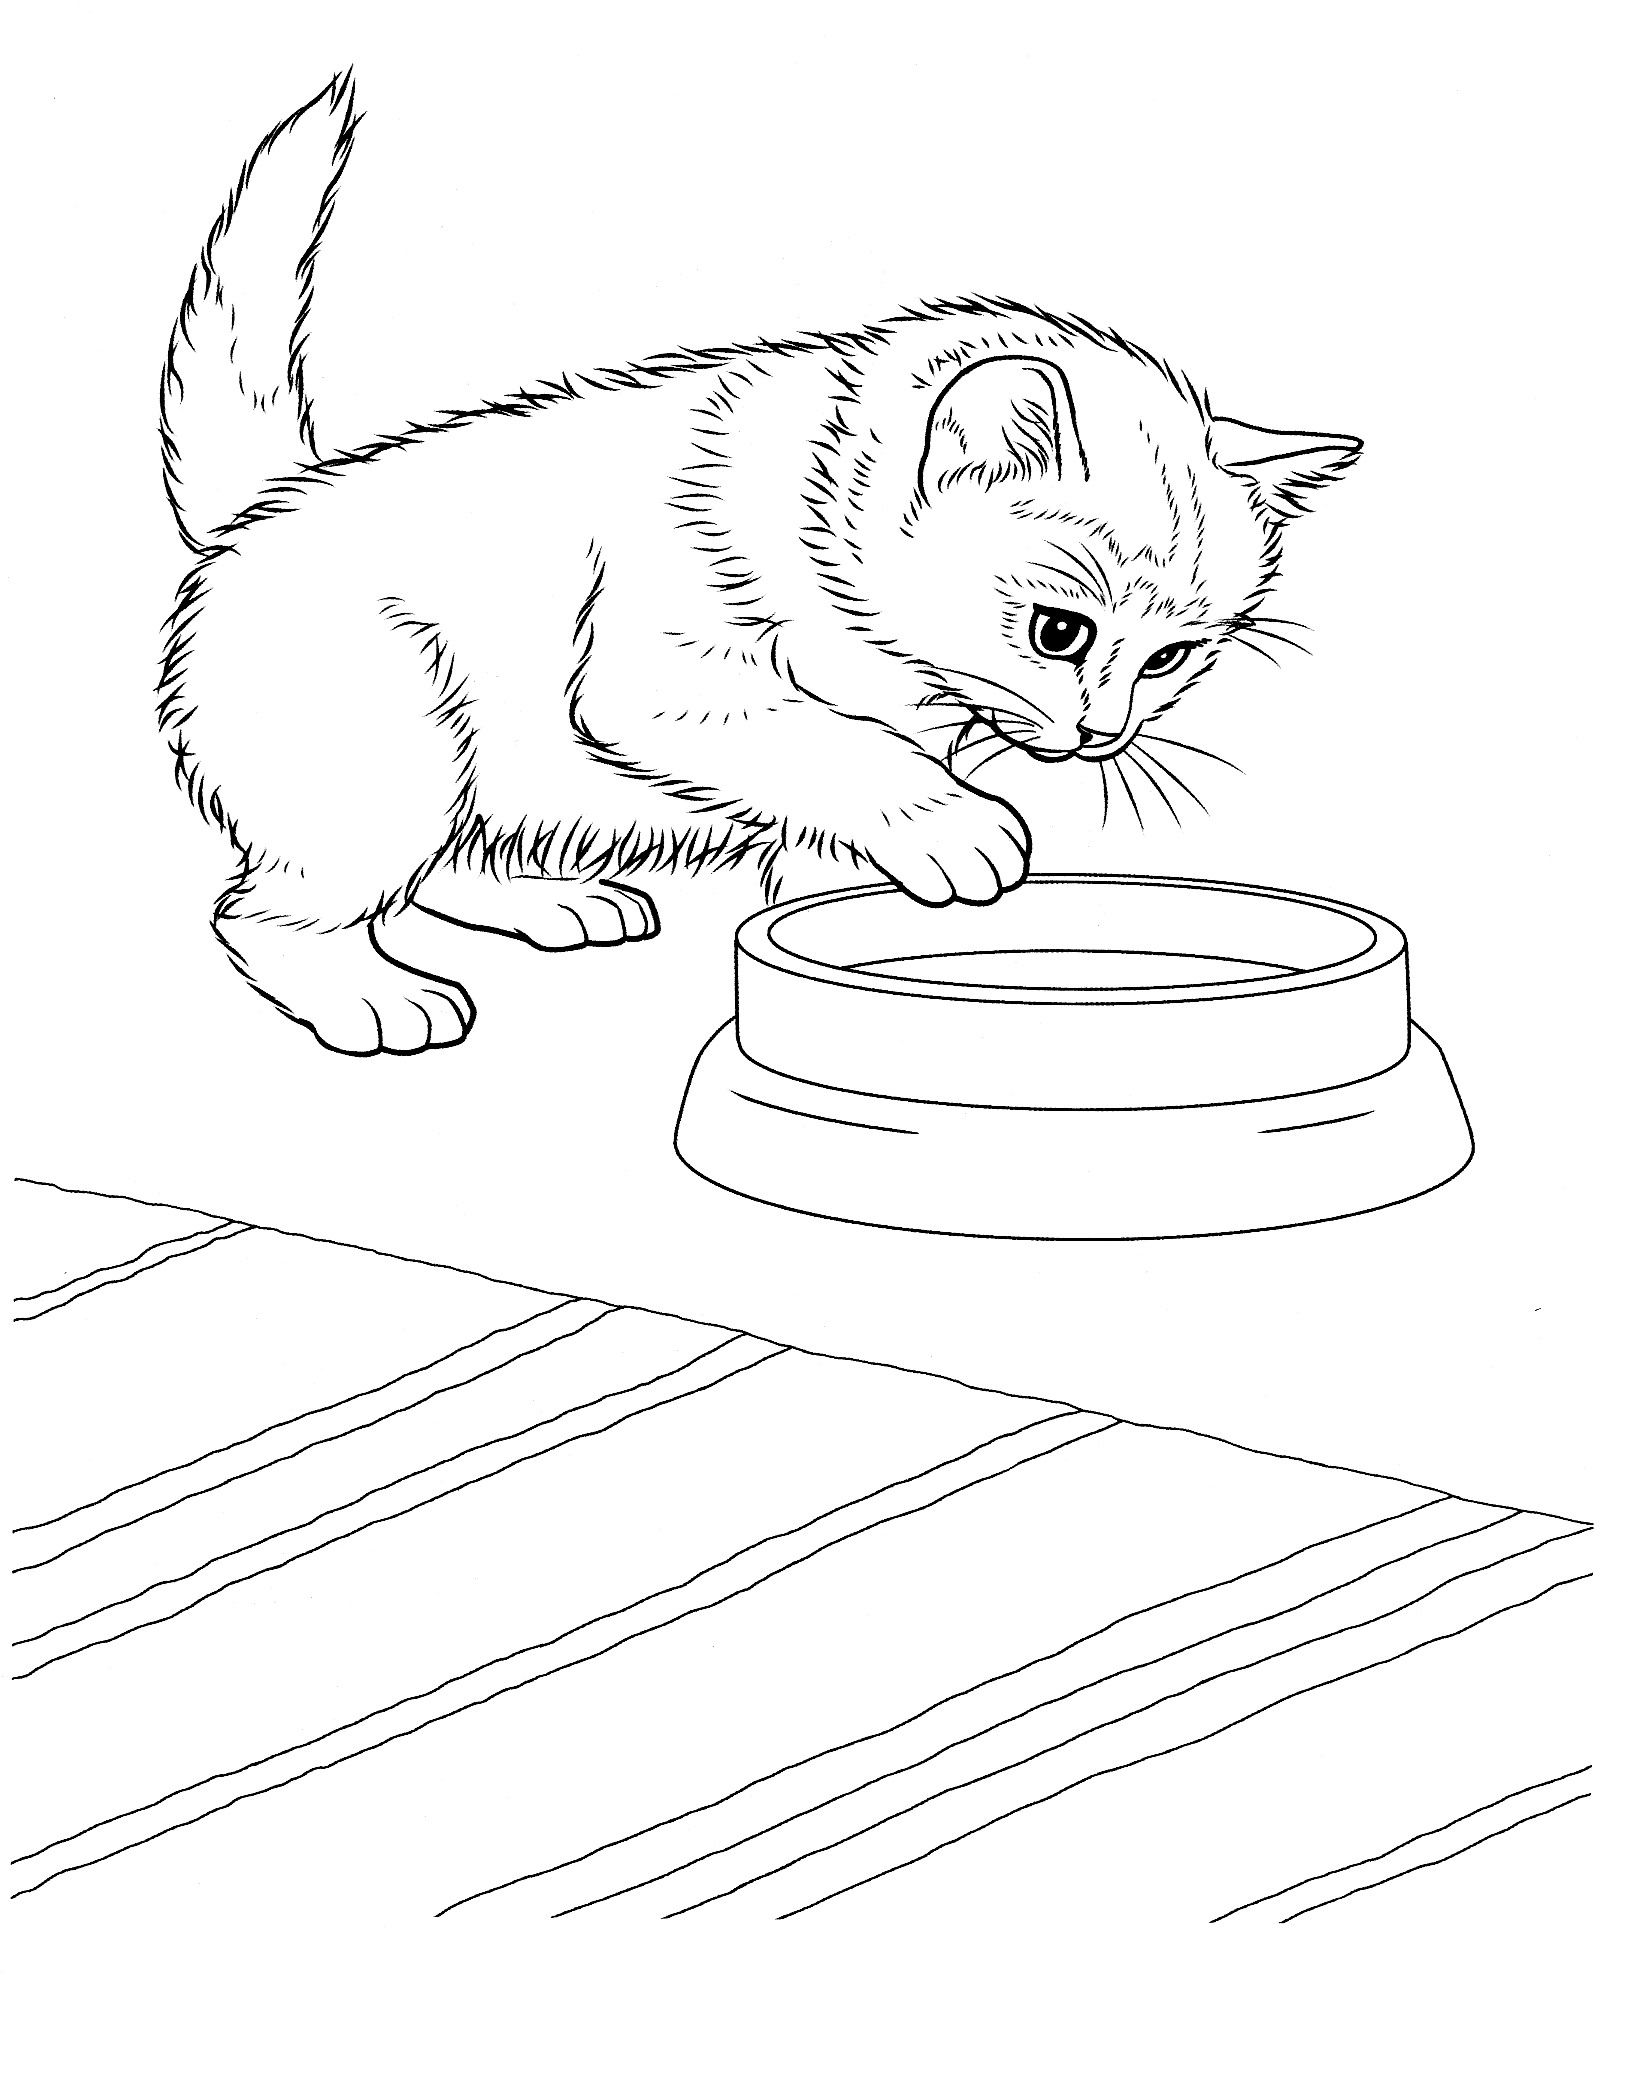 Disegni Da Colorare Per Adulti E Ragazzi.Cat 9 Cats Coloring Pages For Teens And Adults Puppy Coloring Pages Cat Coloring Page Kids Printable Coloring Pages